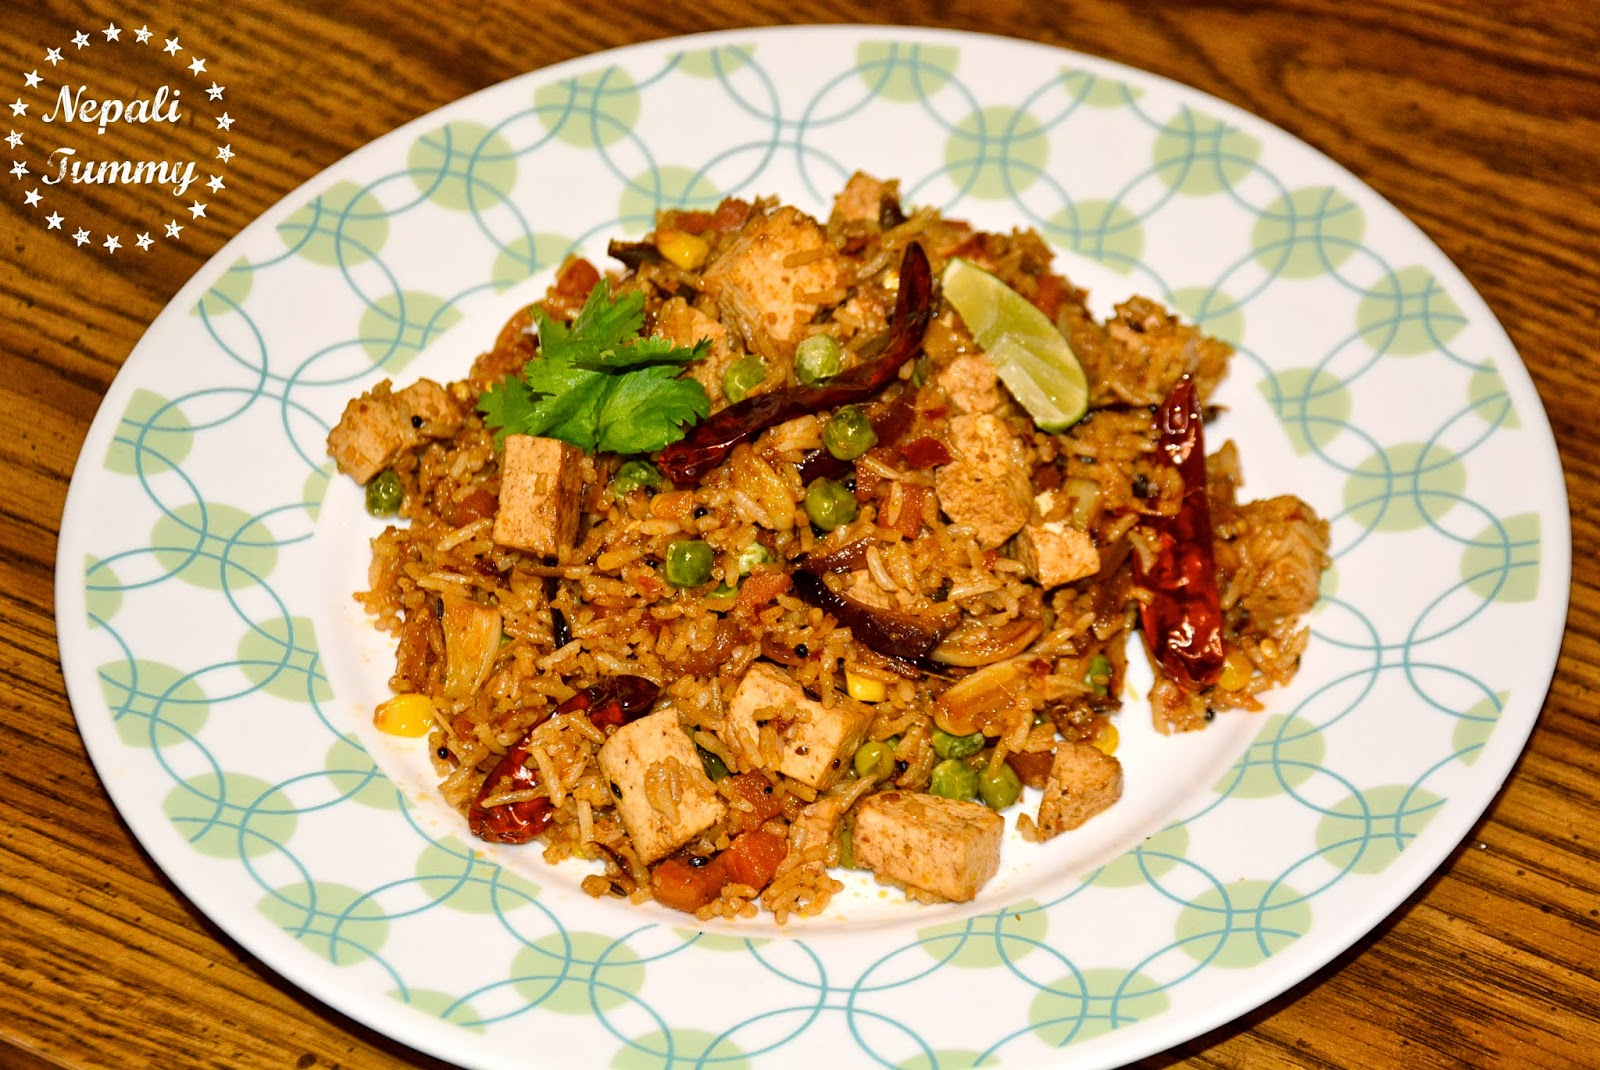 Nepali tummy vegetarian nepali style tofu fried rice recipe here you go guys below is the step by step process to make nepali style tofu fried rice forumfinder Image collections